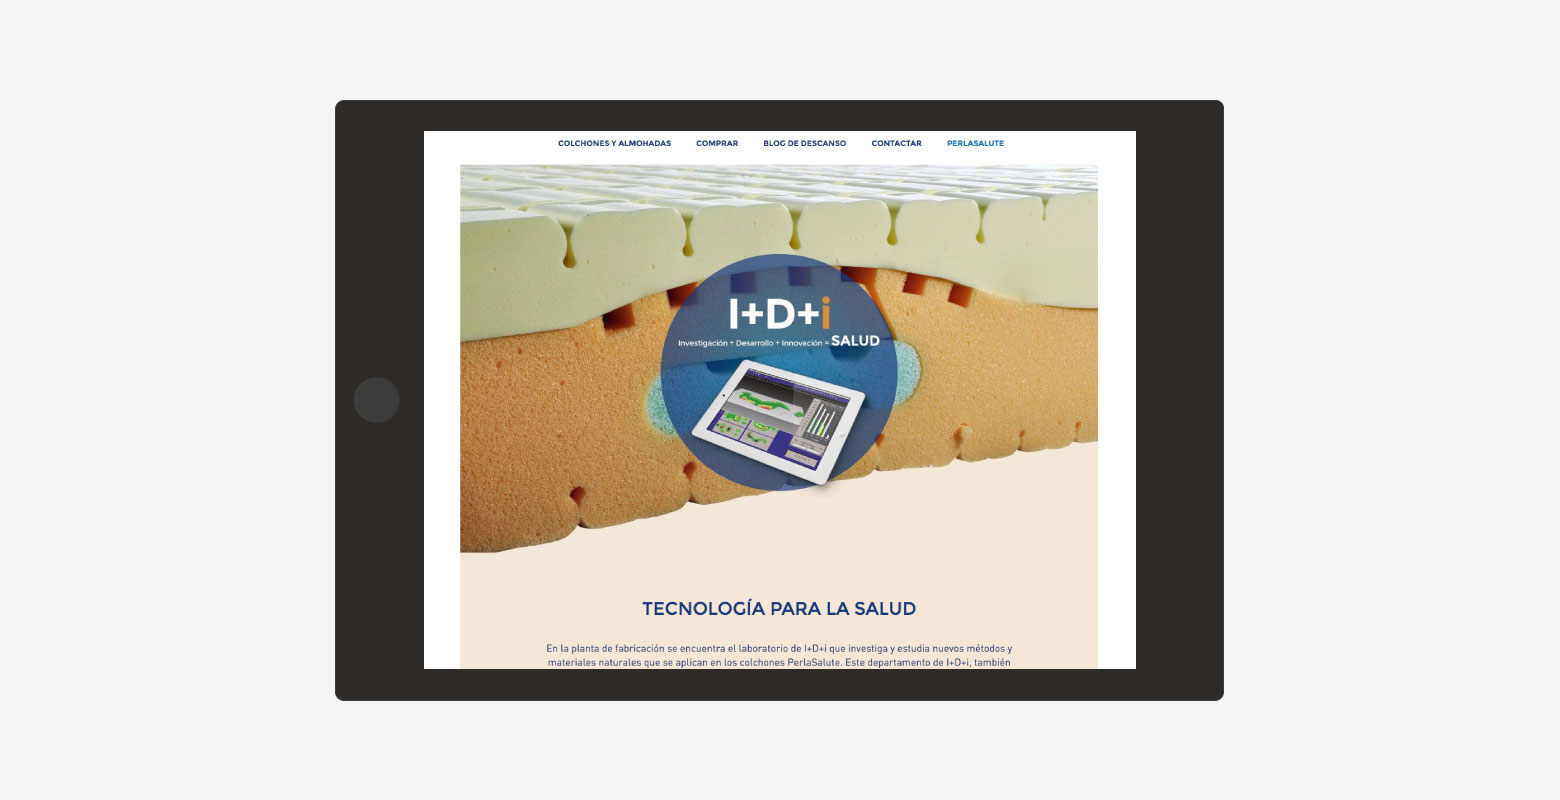 diseno-web-corporativo-catalogo-04